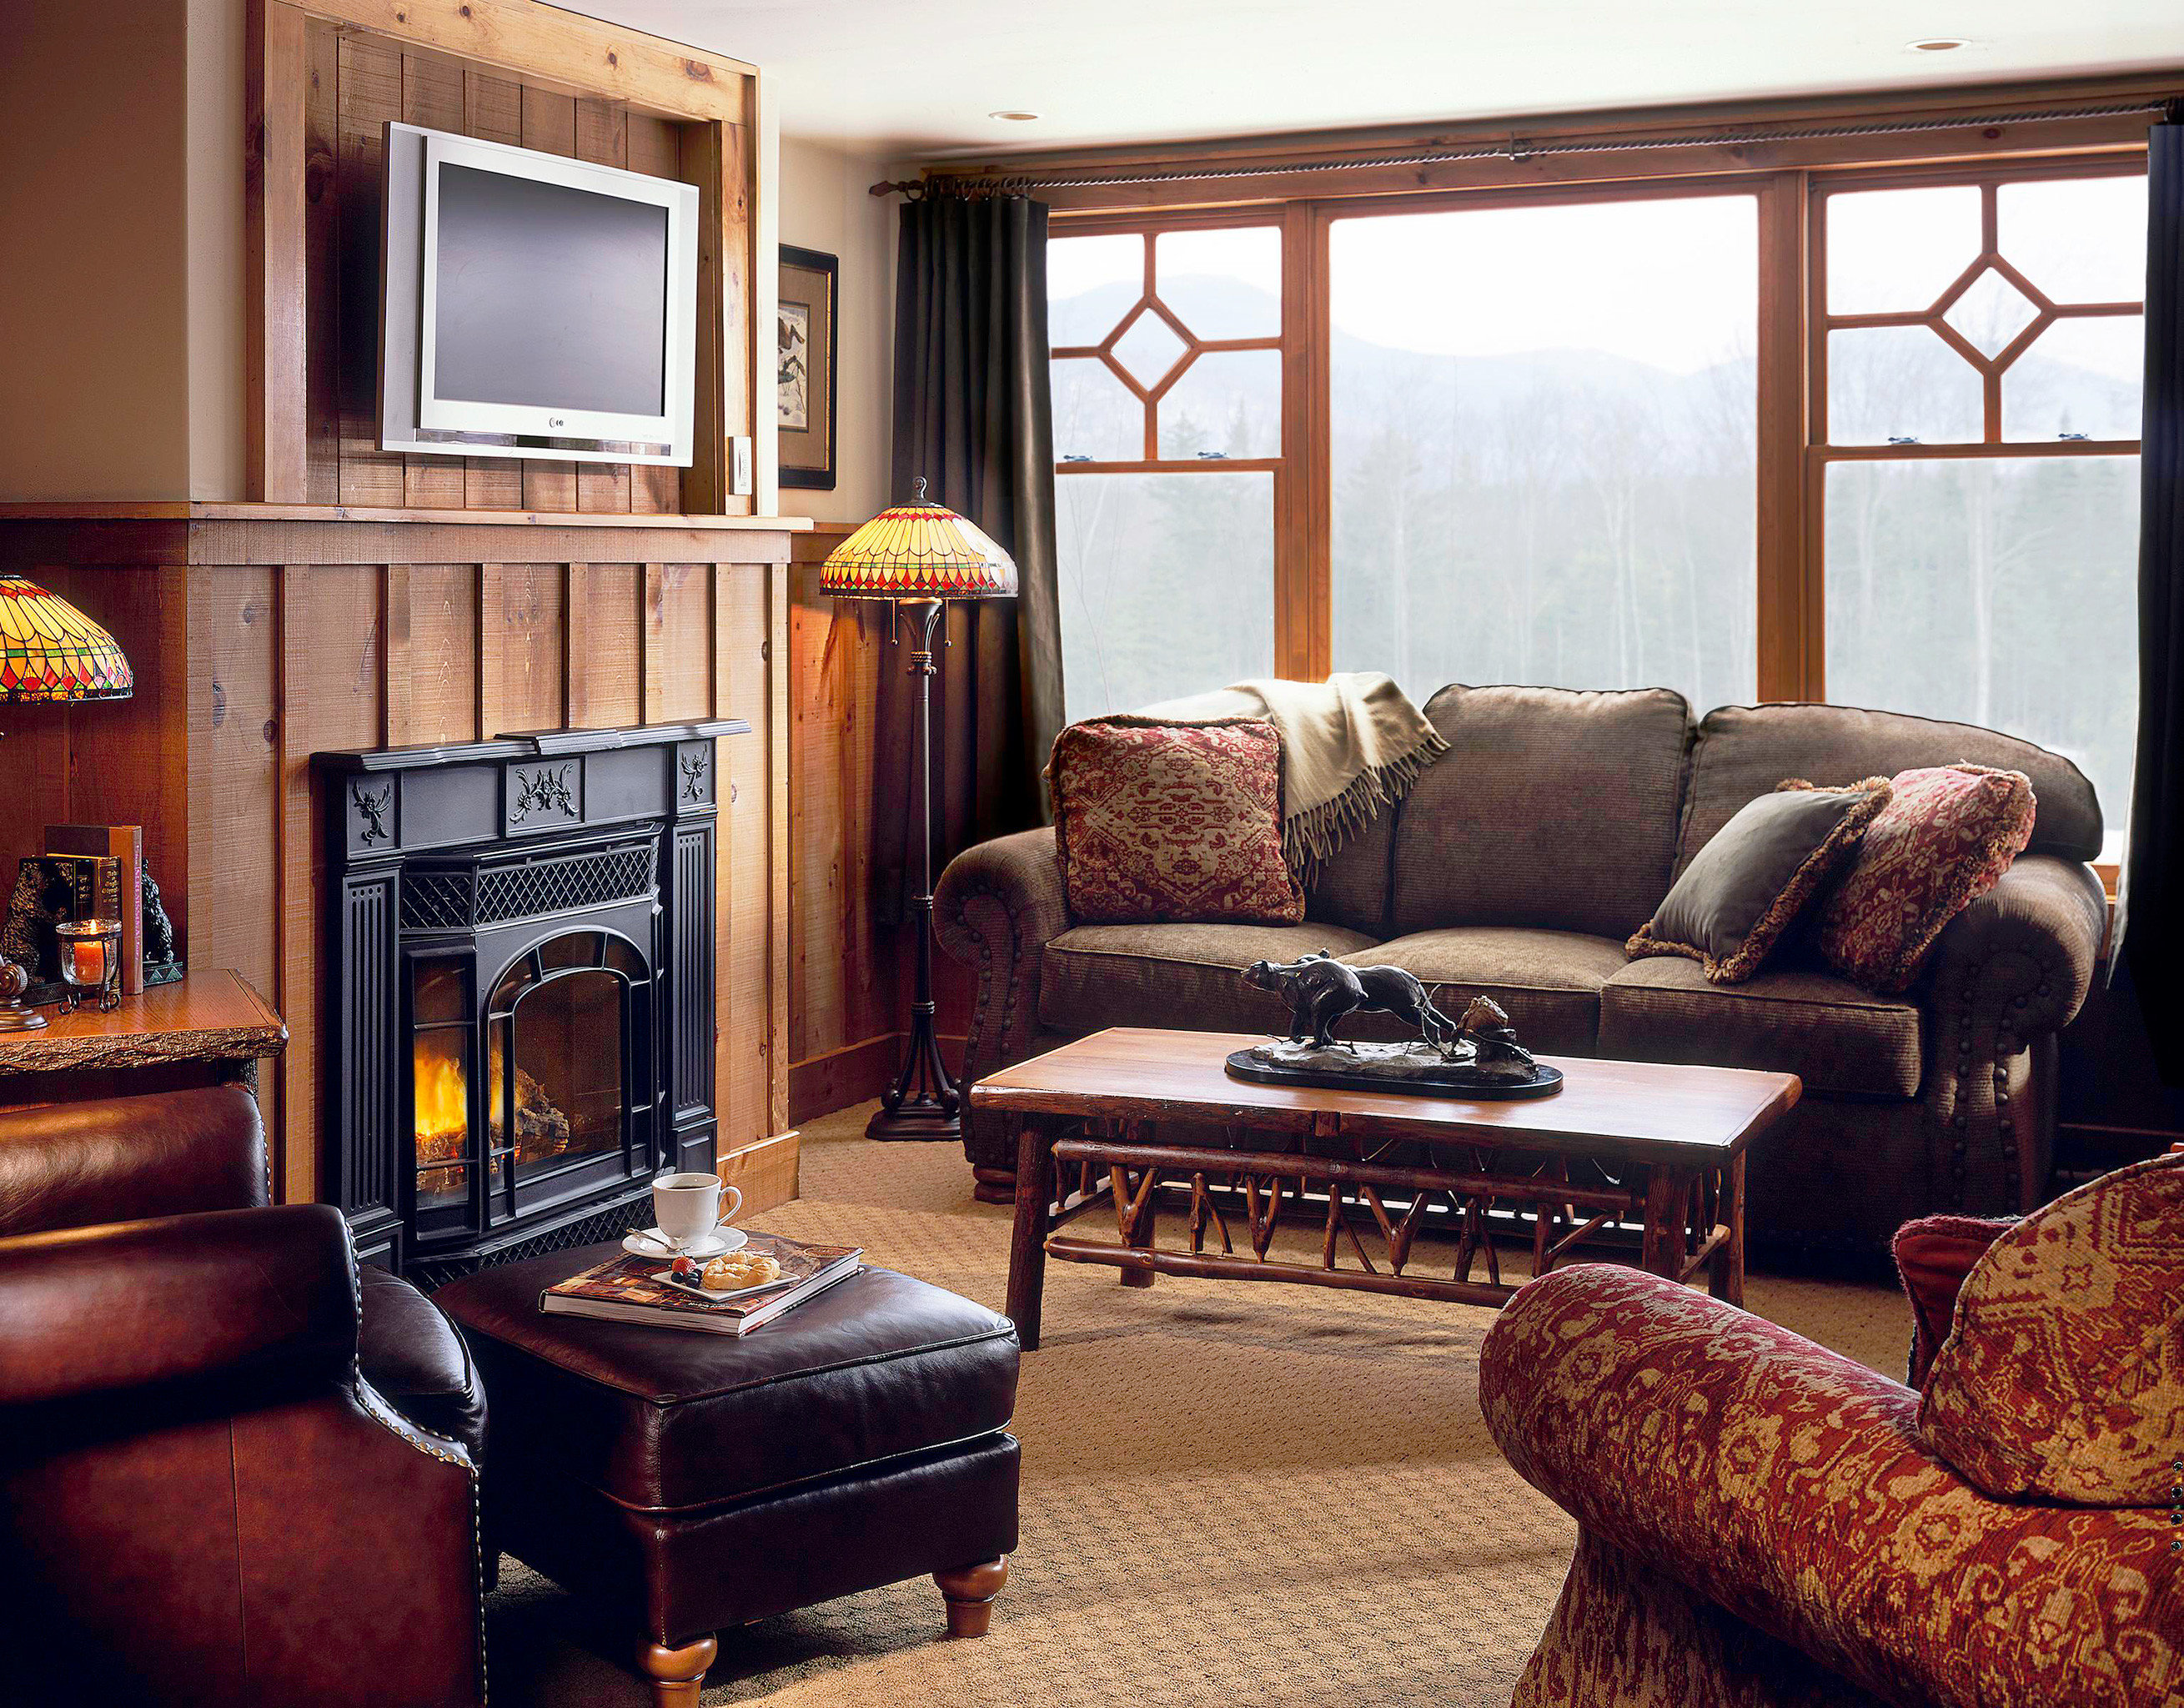 Lodge Lounge Luxury Romantic Rustic sofa living room property home hardwood cottage Suite leather